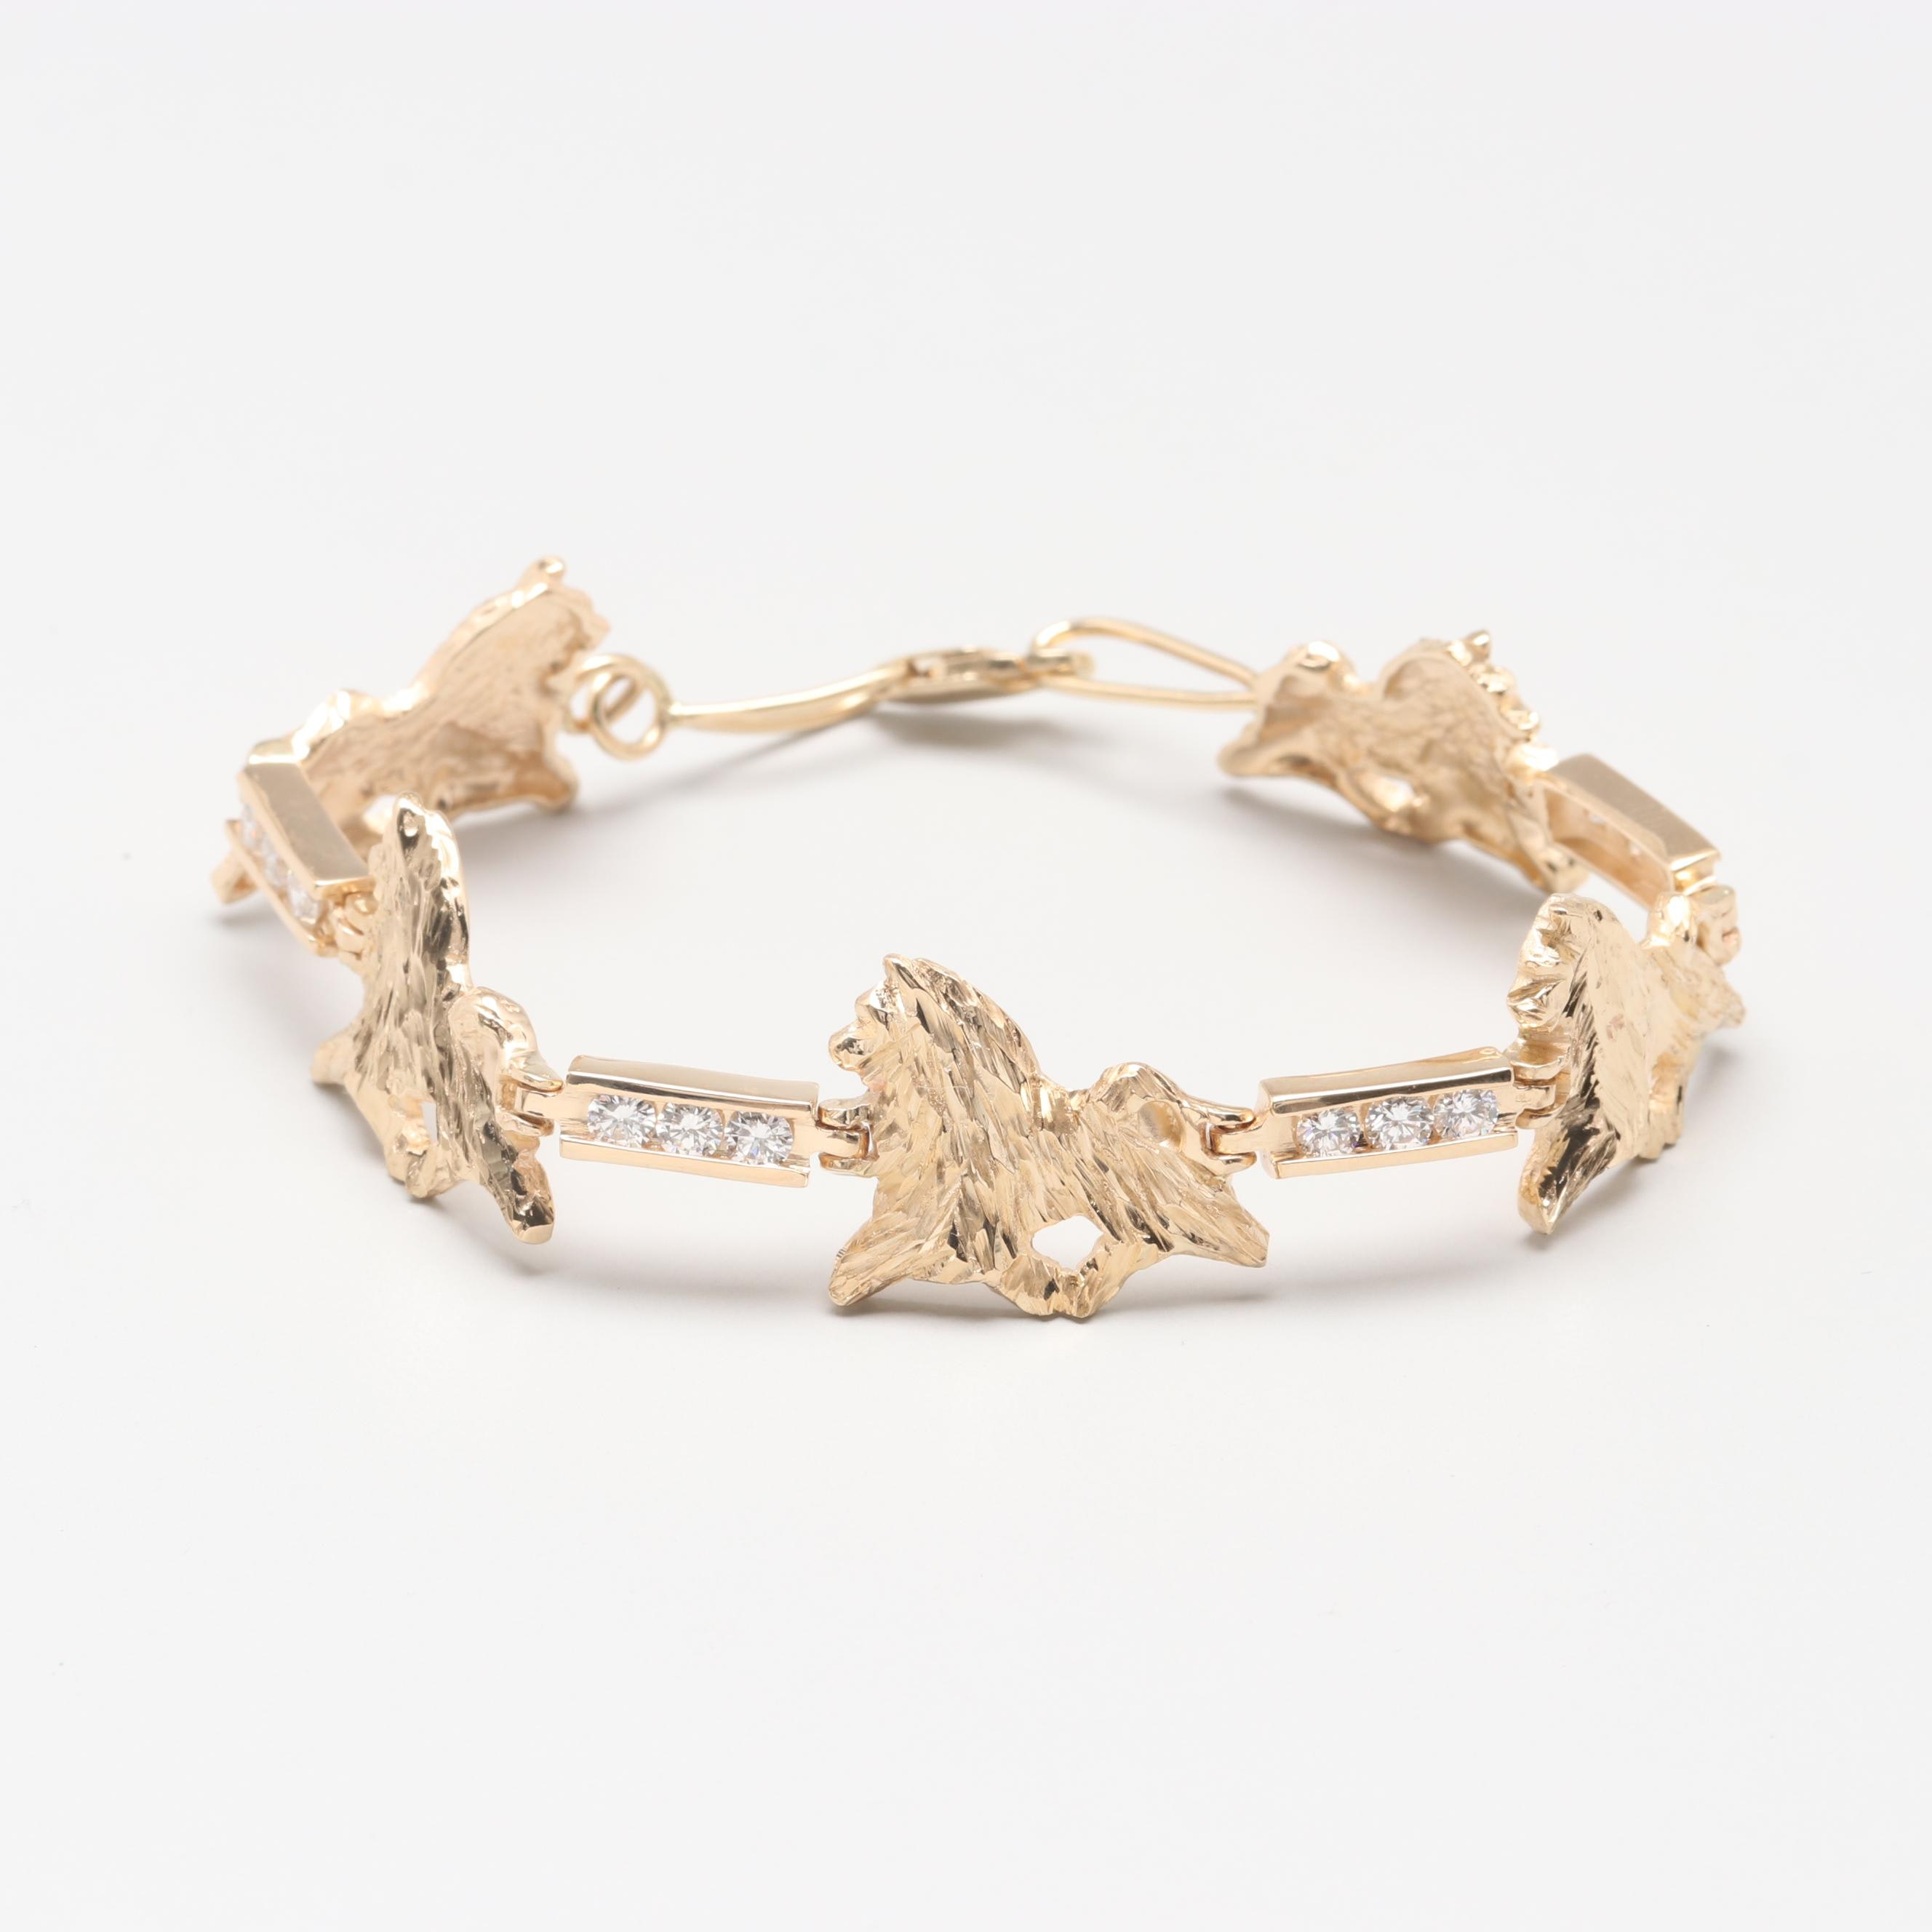 14K Yellow Gold 1.25 CTW Diamond Dog Motif Bracelet